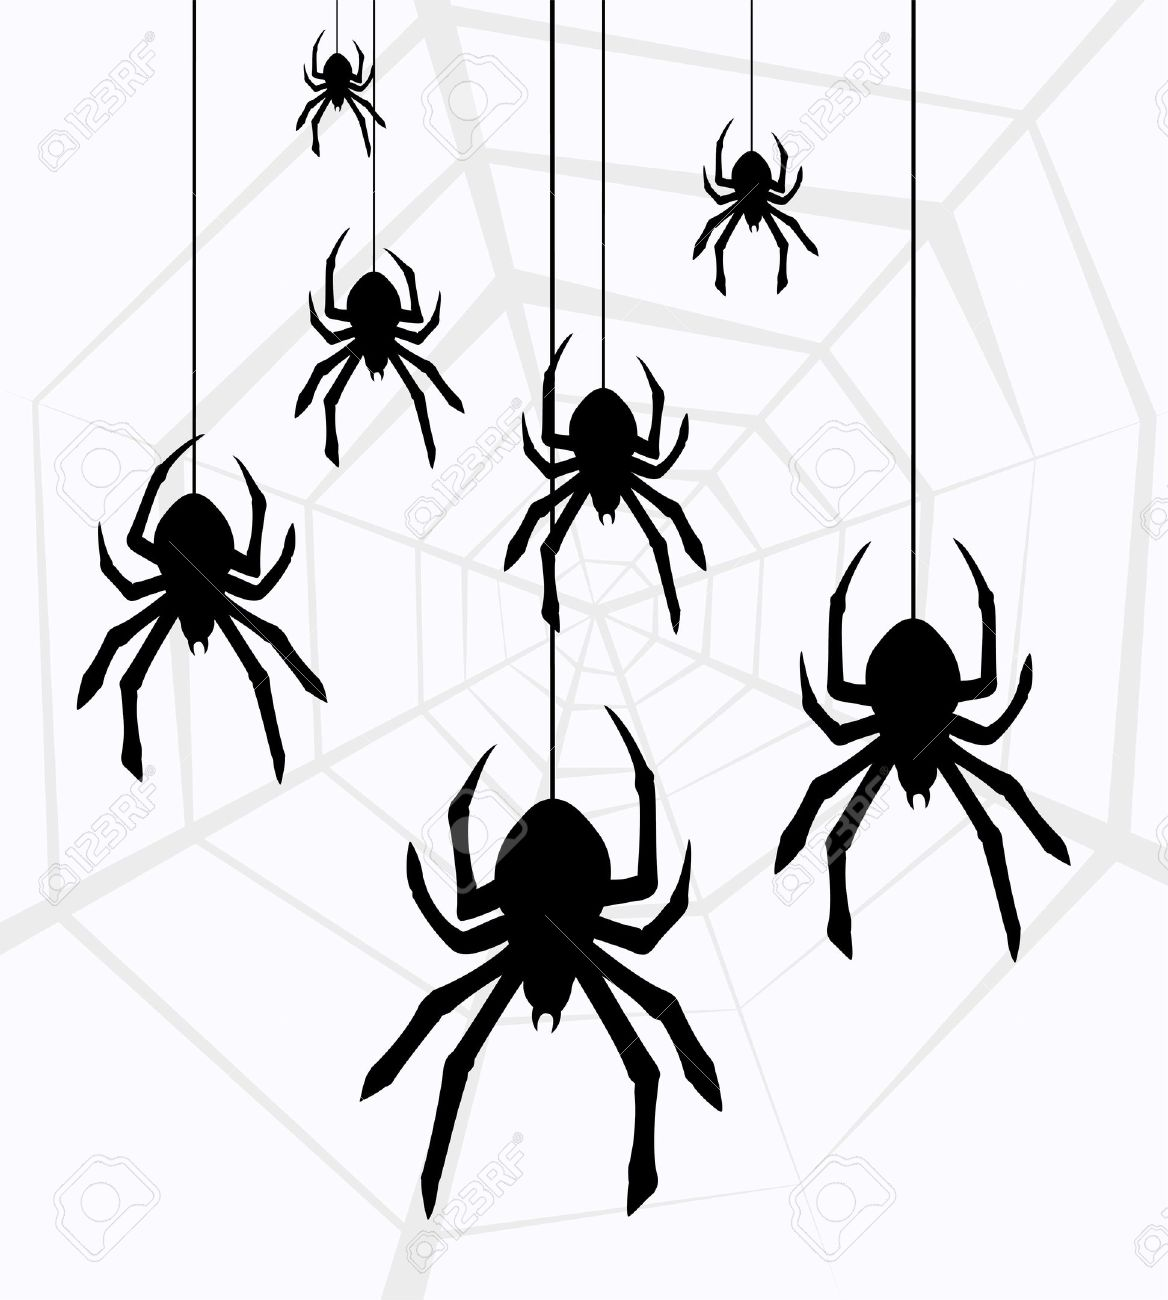 illustration of hanging spiders and web royalty free cliparts